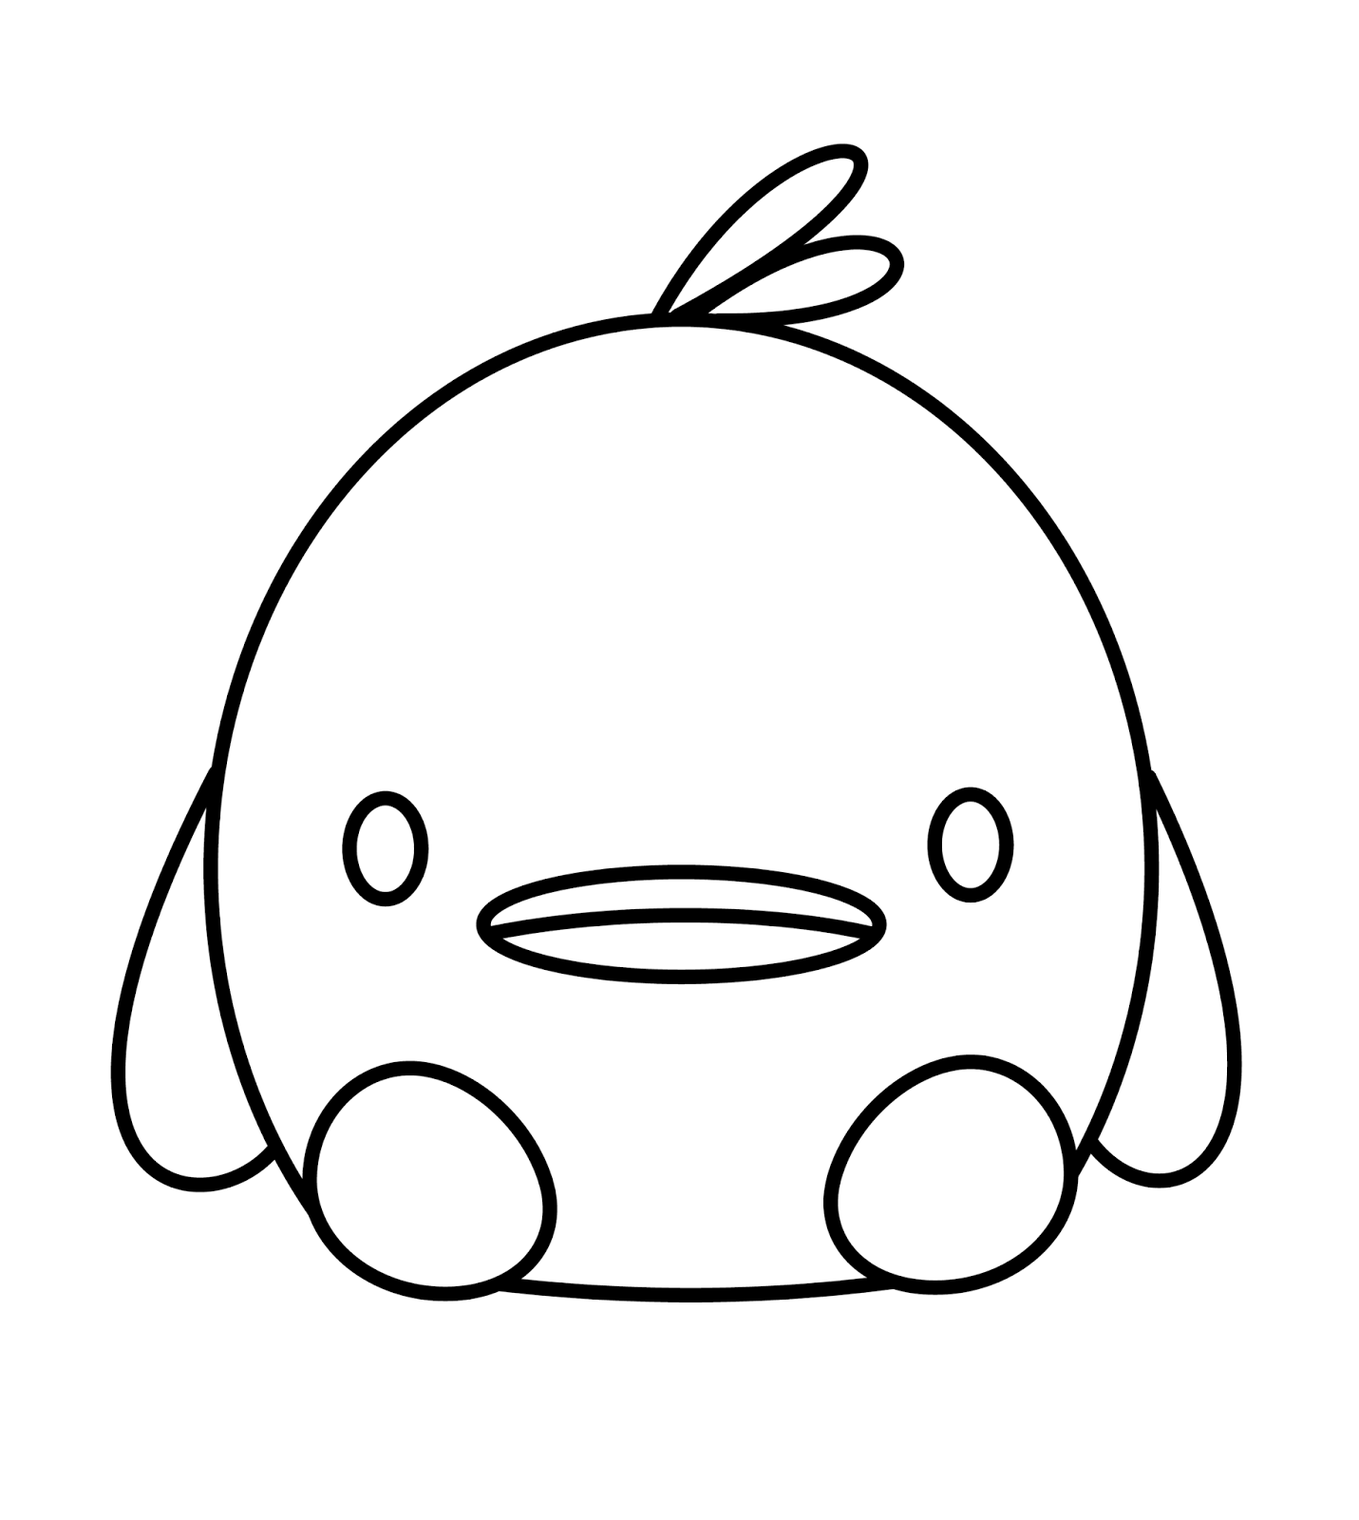 Line Drawing Duck